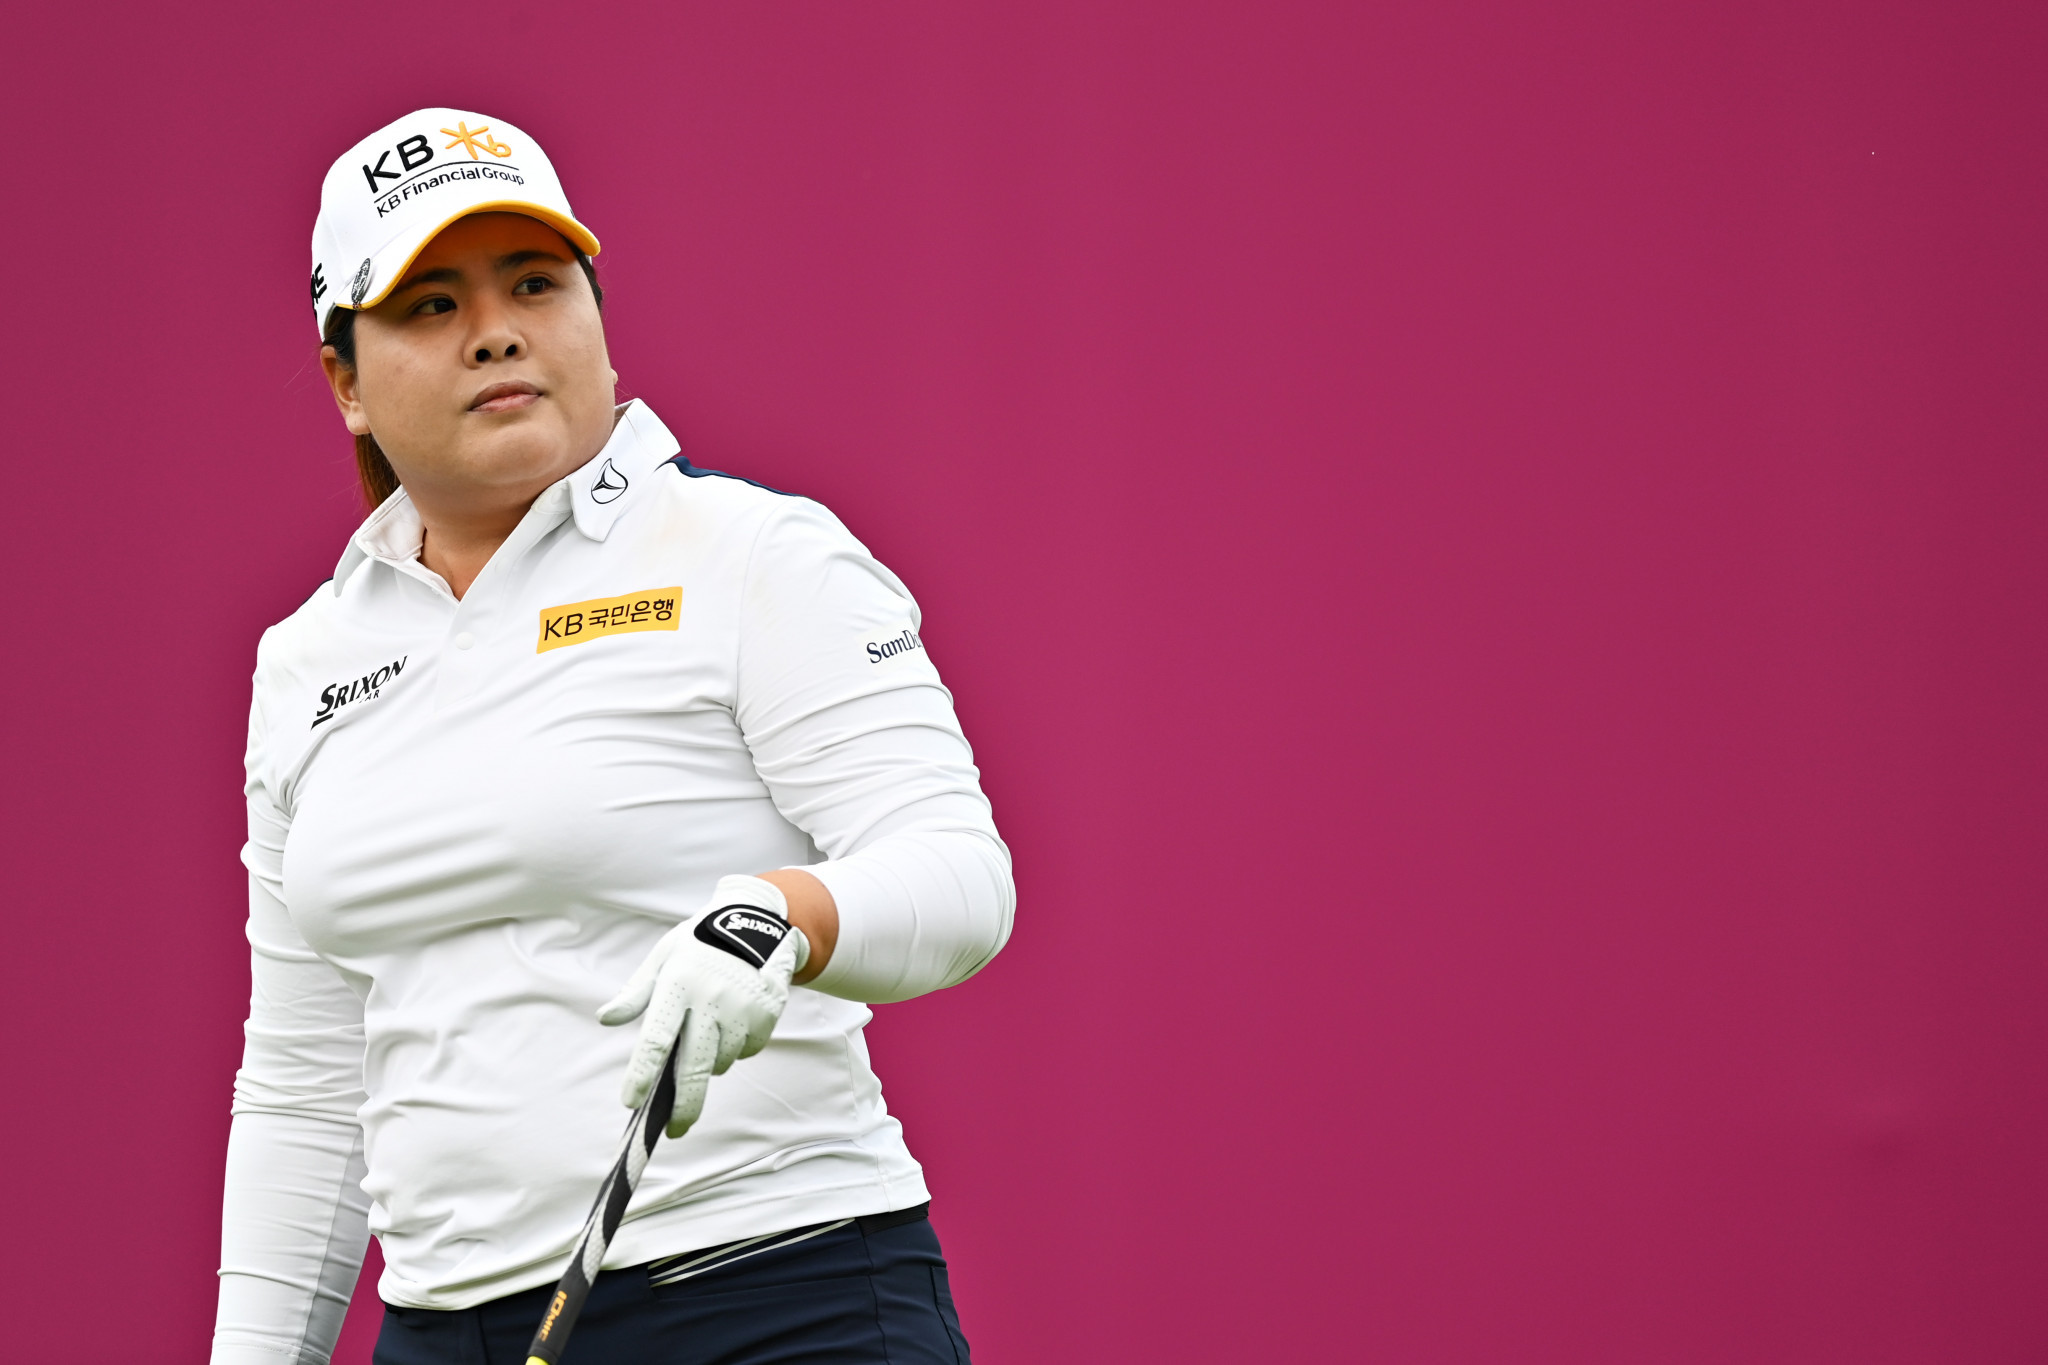 Park Inbee of South Korea will defend the women's golf title ©Getty Images